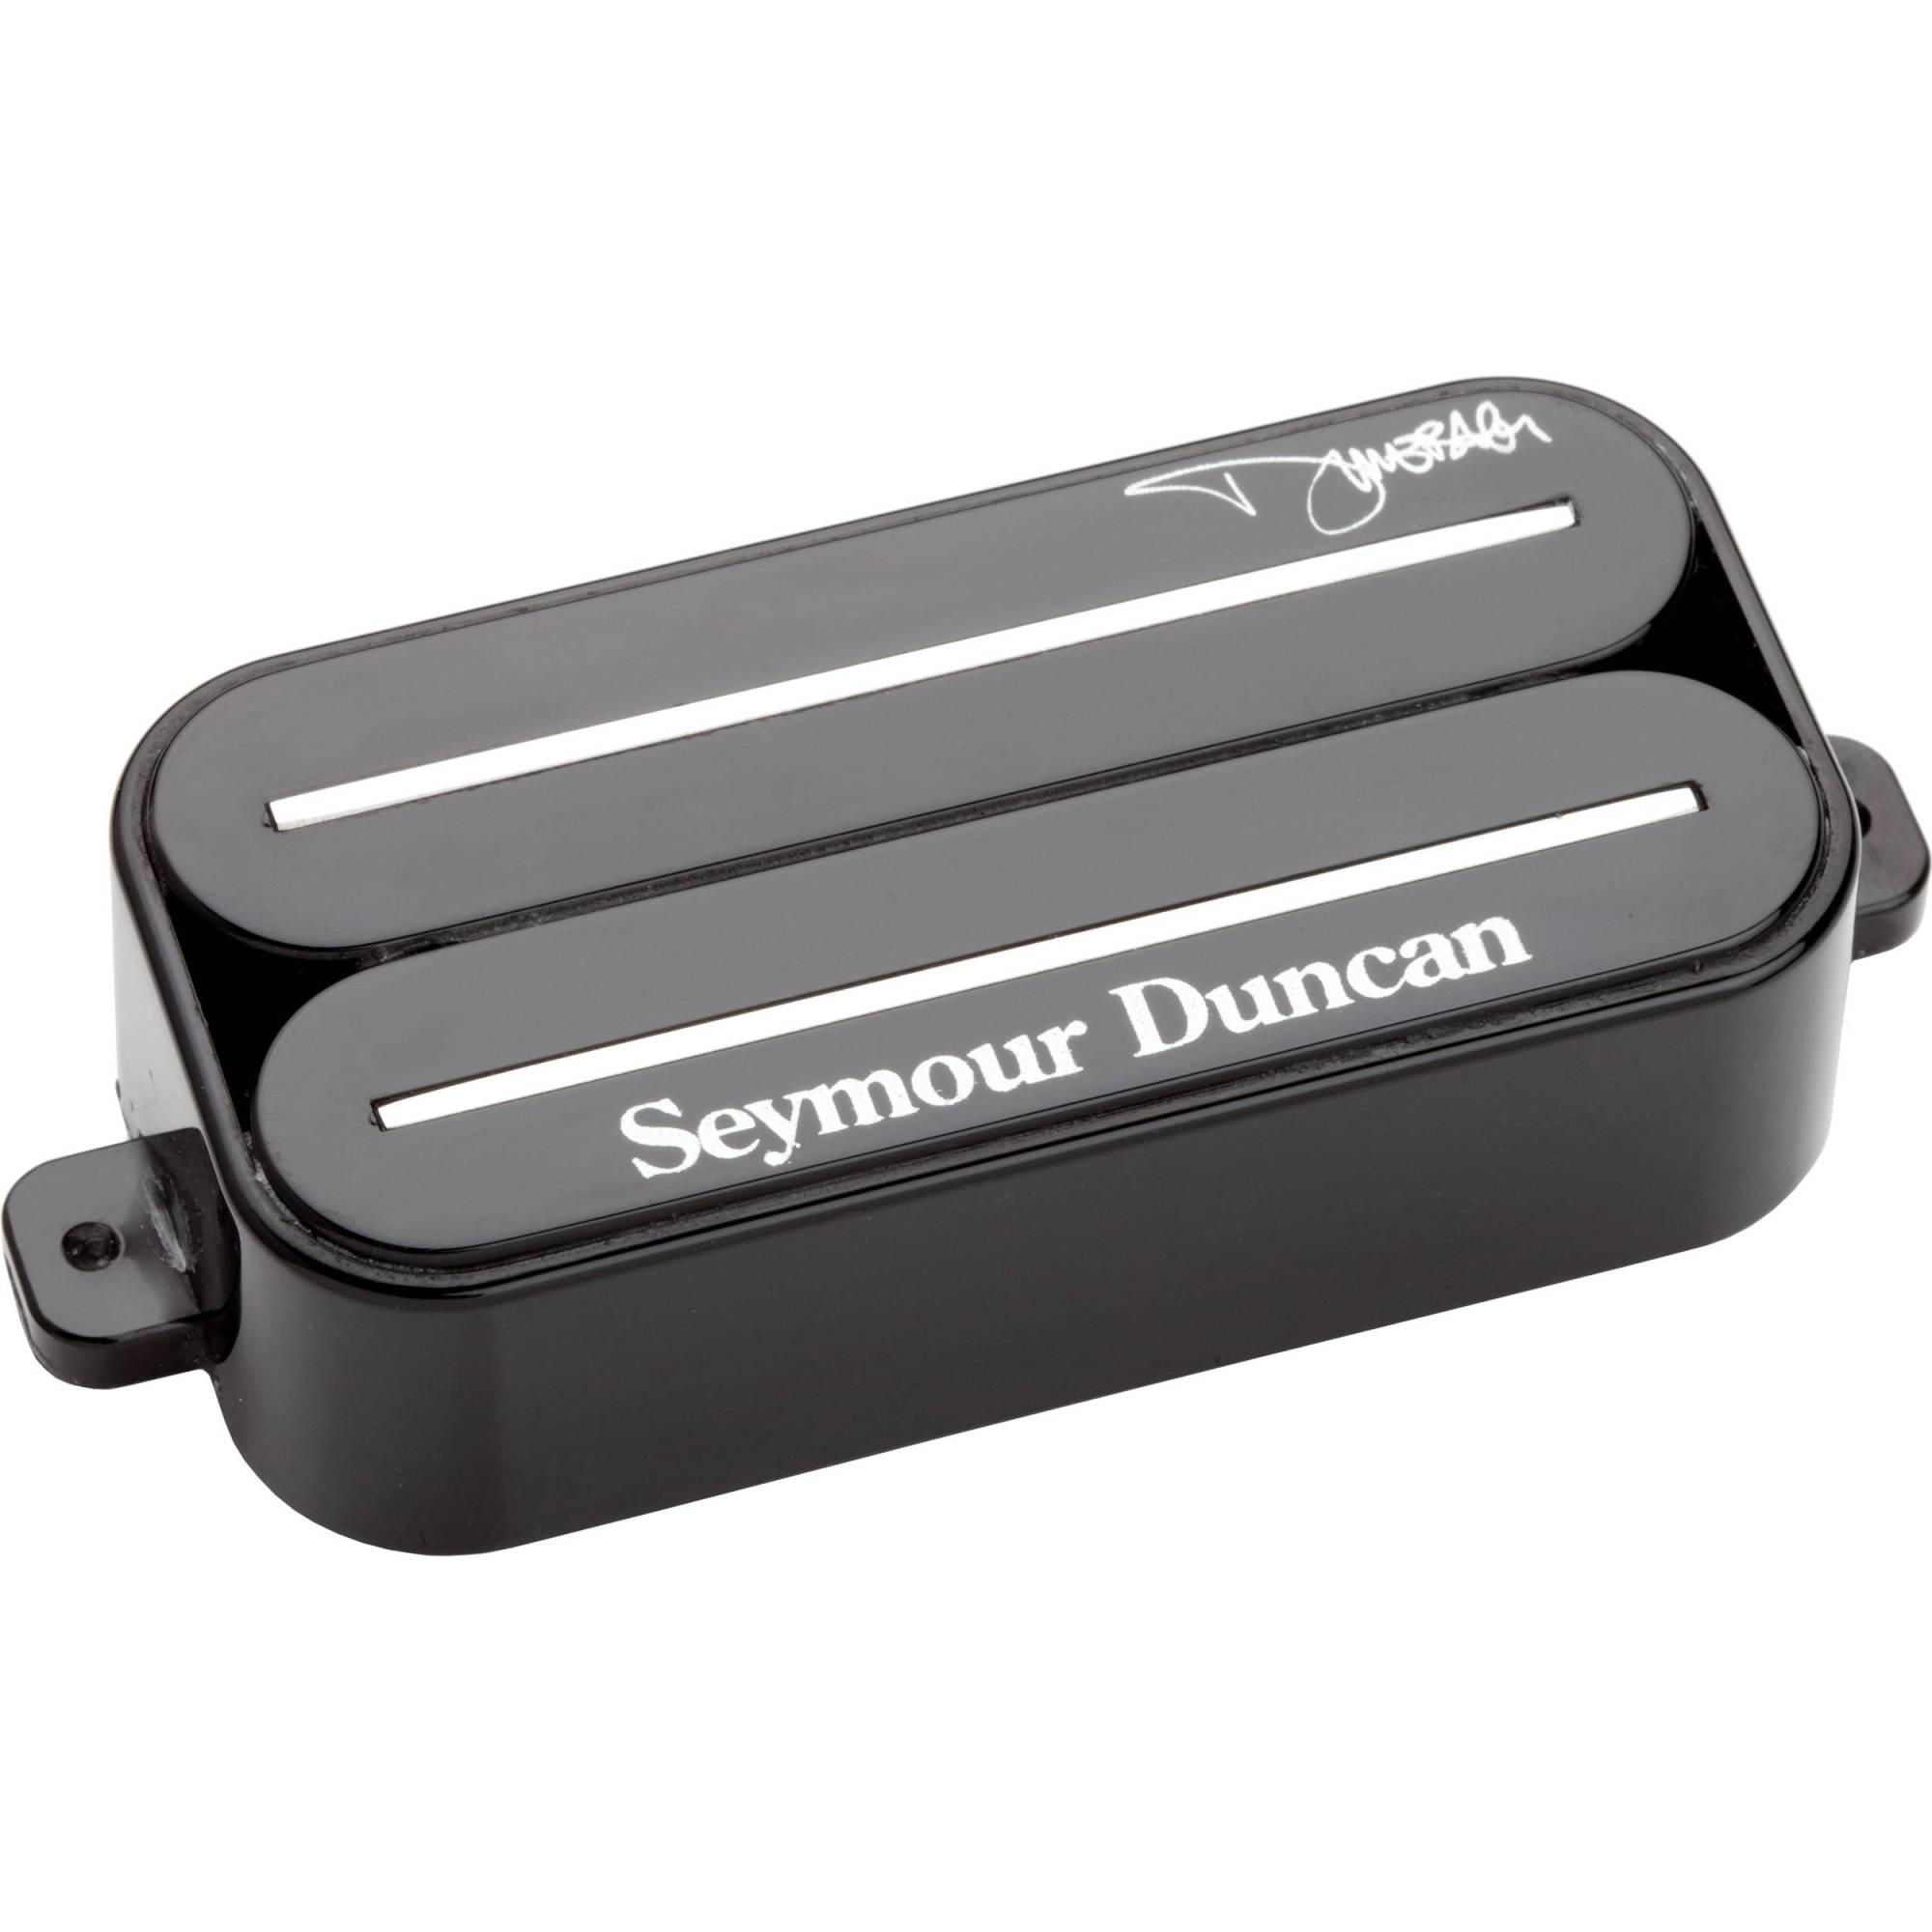 hight resolution of seymour duncan sh 13 dimebucker signature humbucker 11102 82 bseymour duncan sh 13 dimebucker signature humbucker